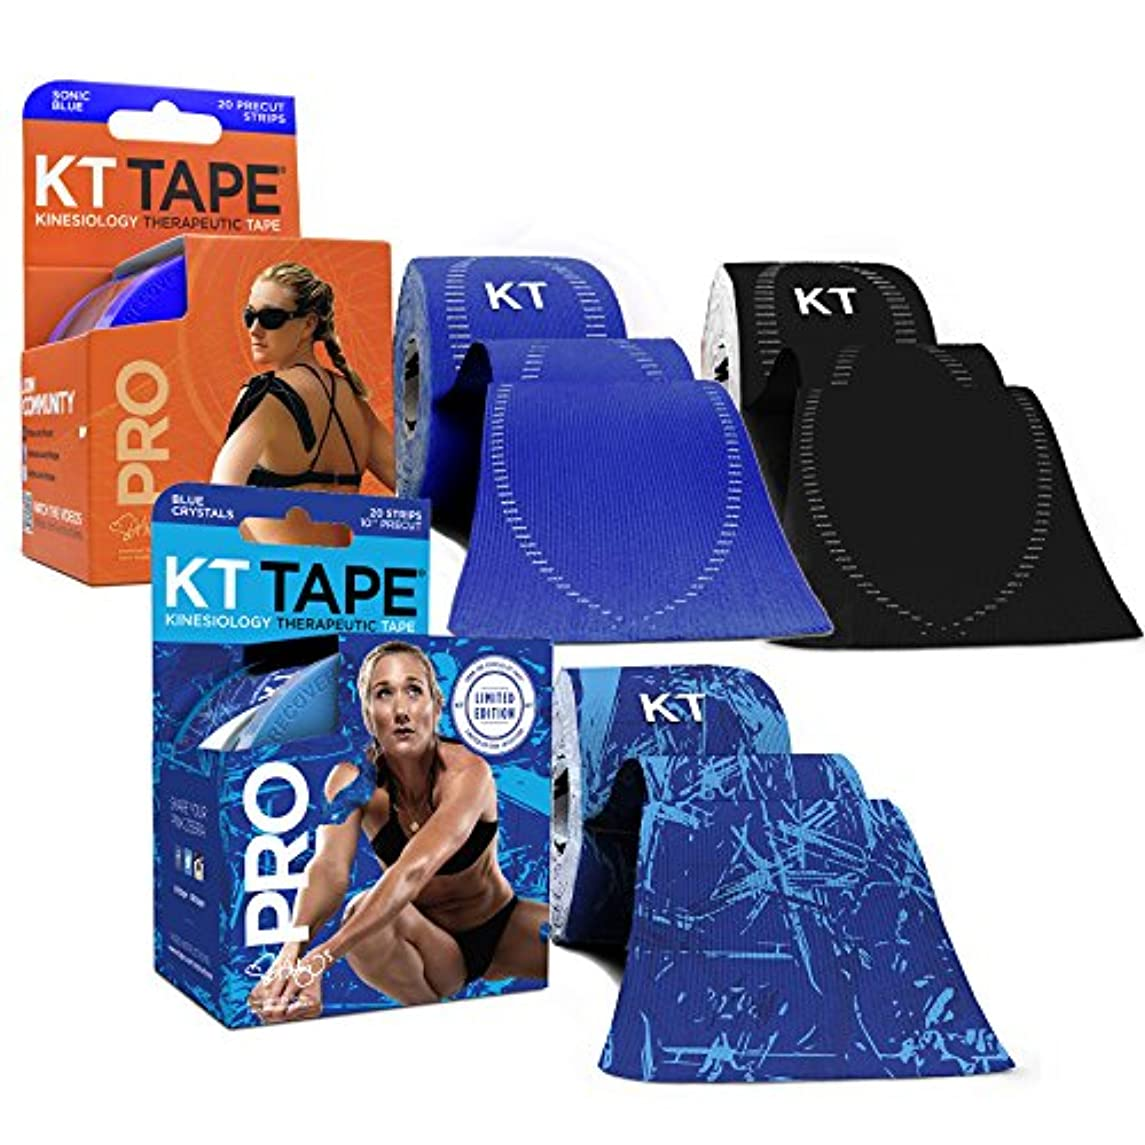 KT Tape PRO Synthetic Kinesiology Tape Three-Roll Bundles - 60 Count Precut I-Strips